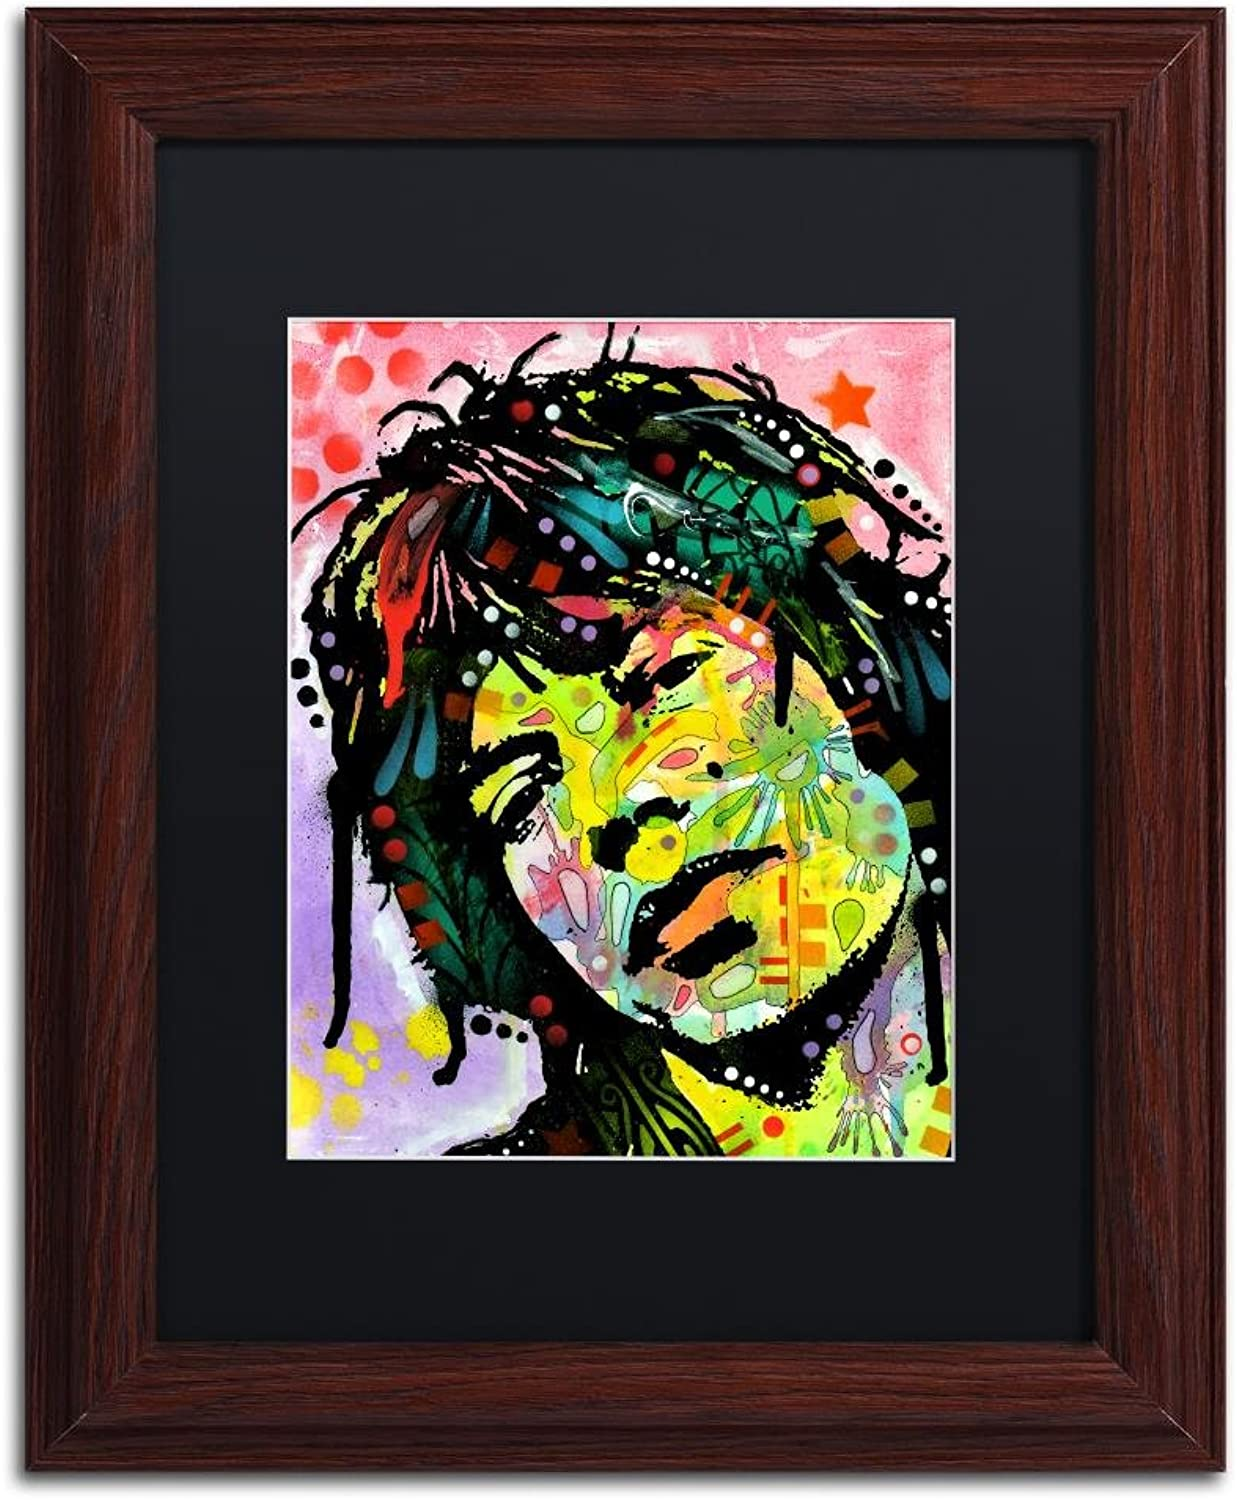 Trademark Fine Art Mick Jagger by Dean Russo, Black Matte, Wood Frame 11x14